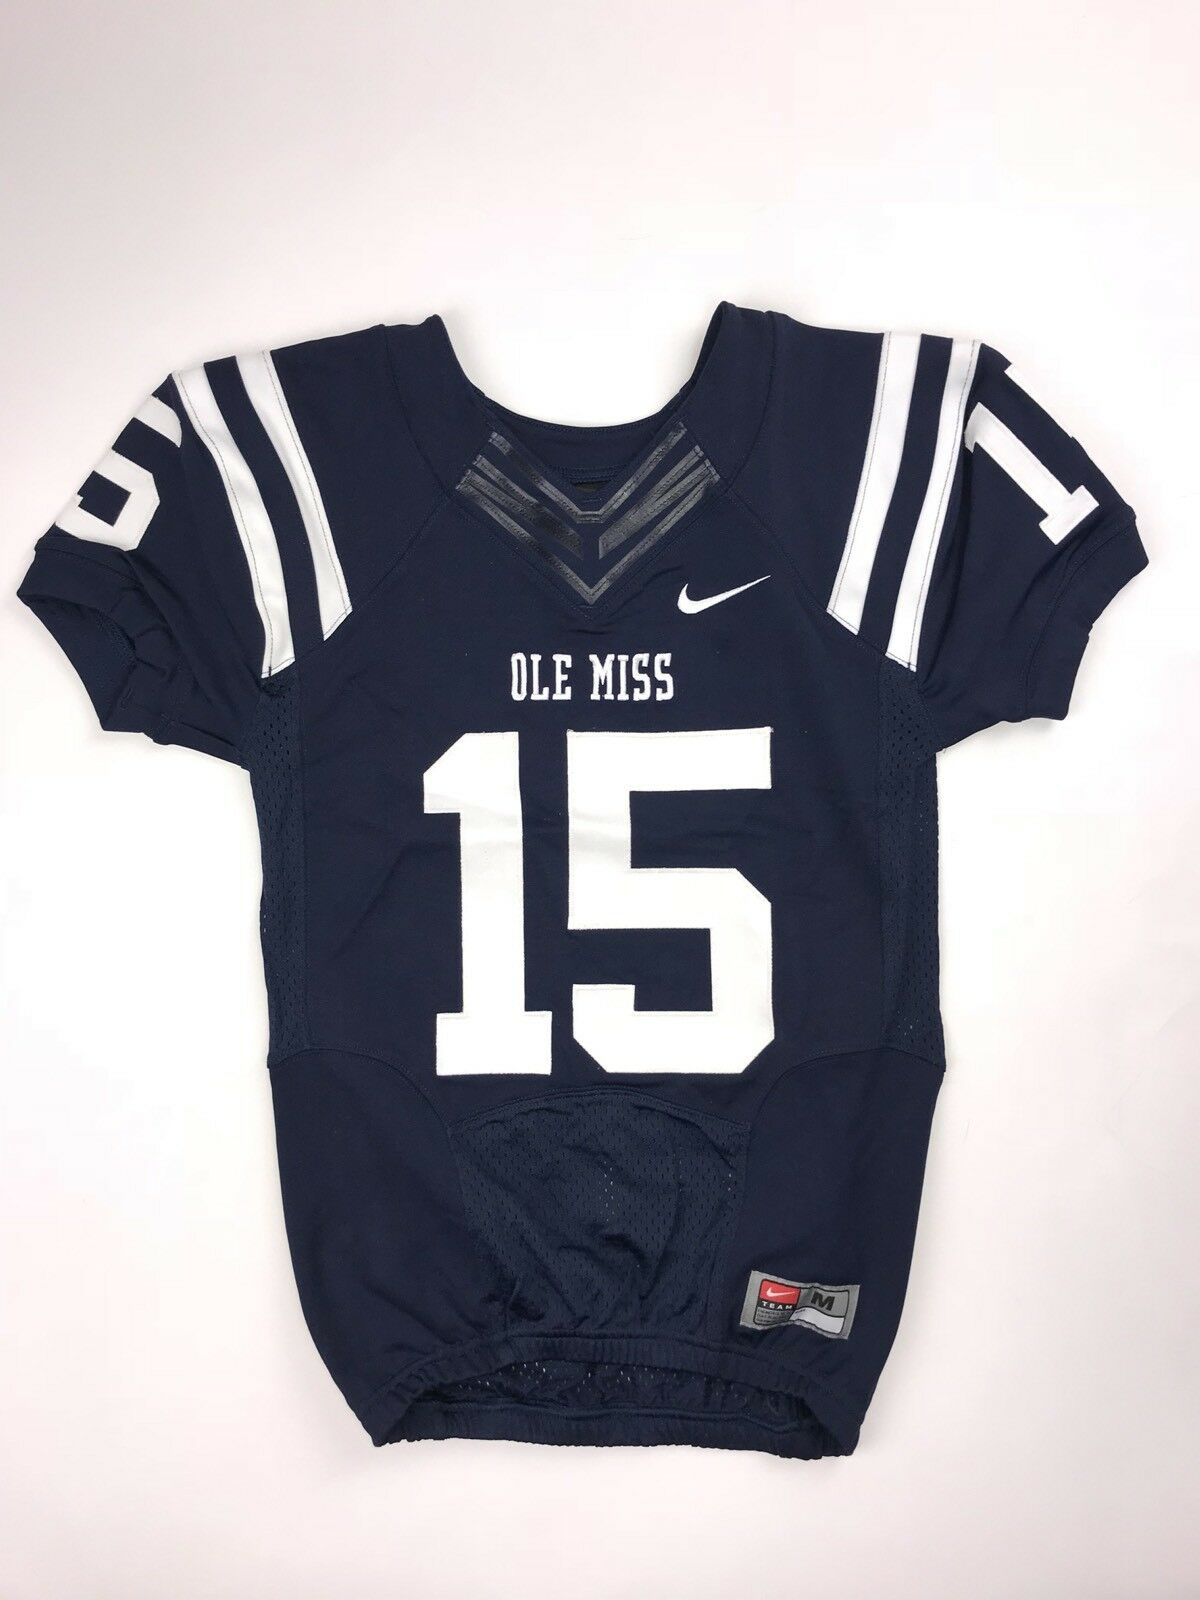 check out 1a3b8 d4742 RARE Nike Ole Miss Boys M Football Navy Blue Authentic Jersey